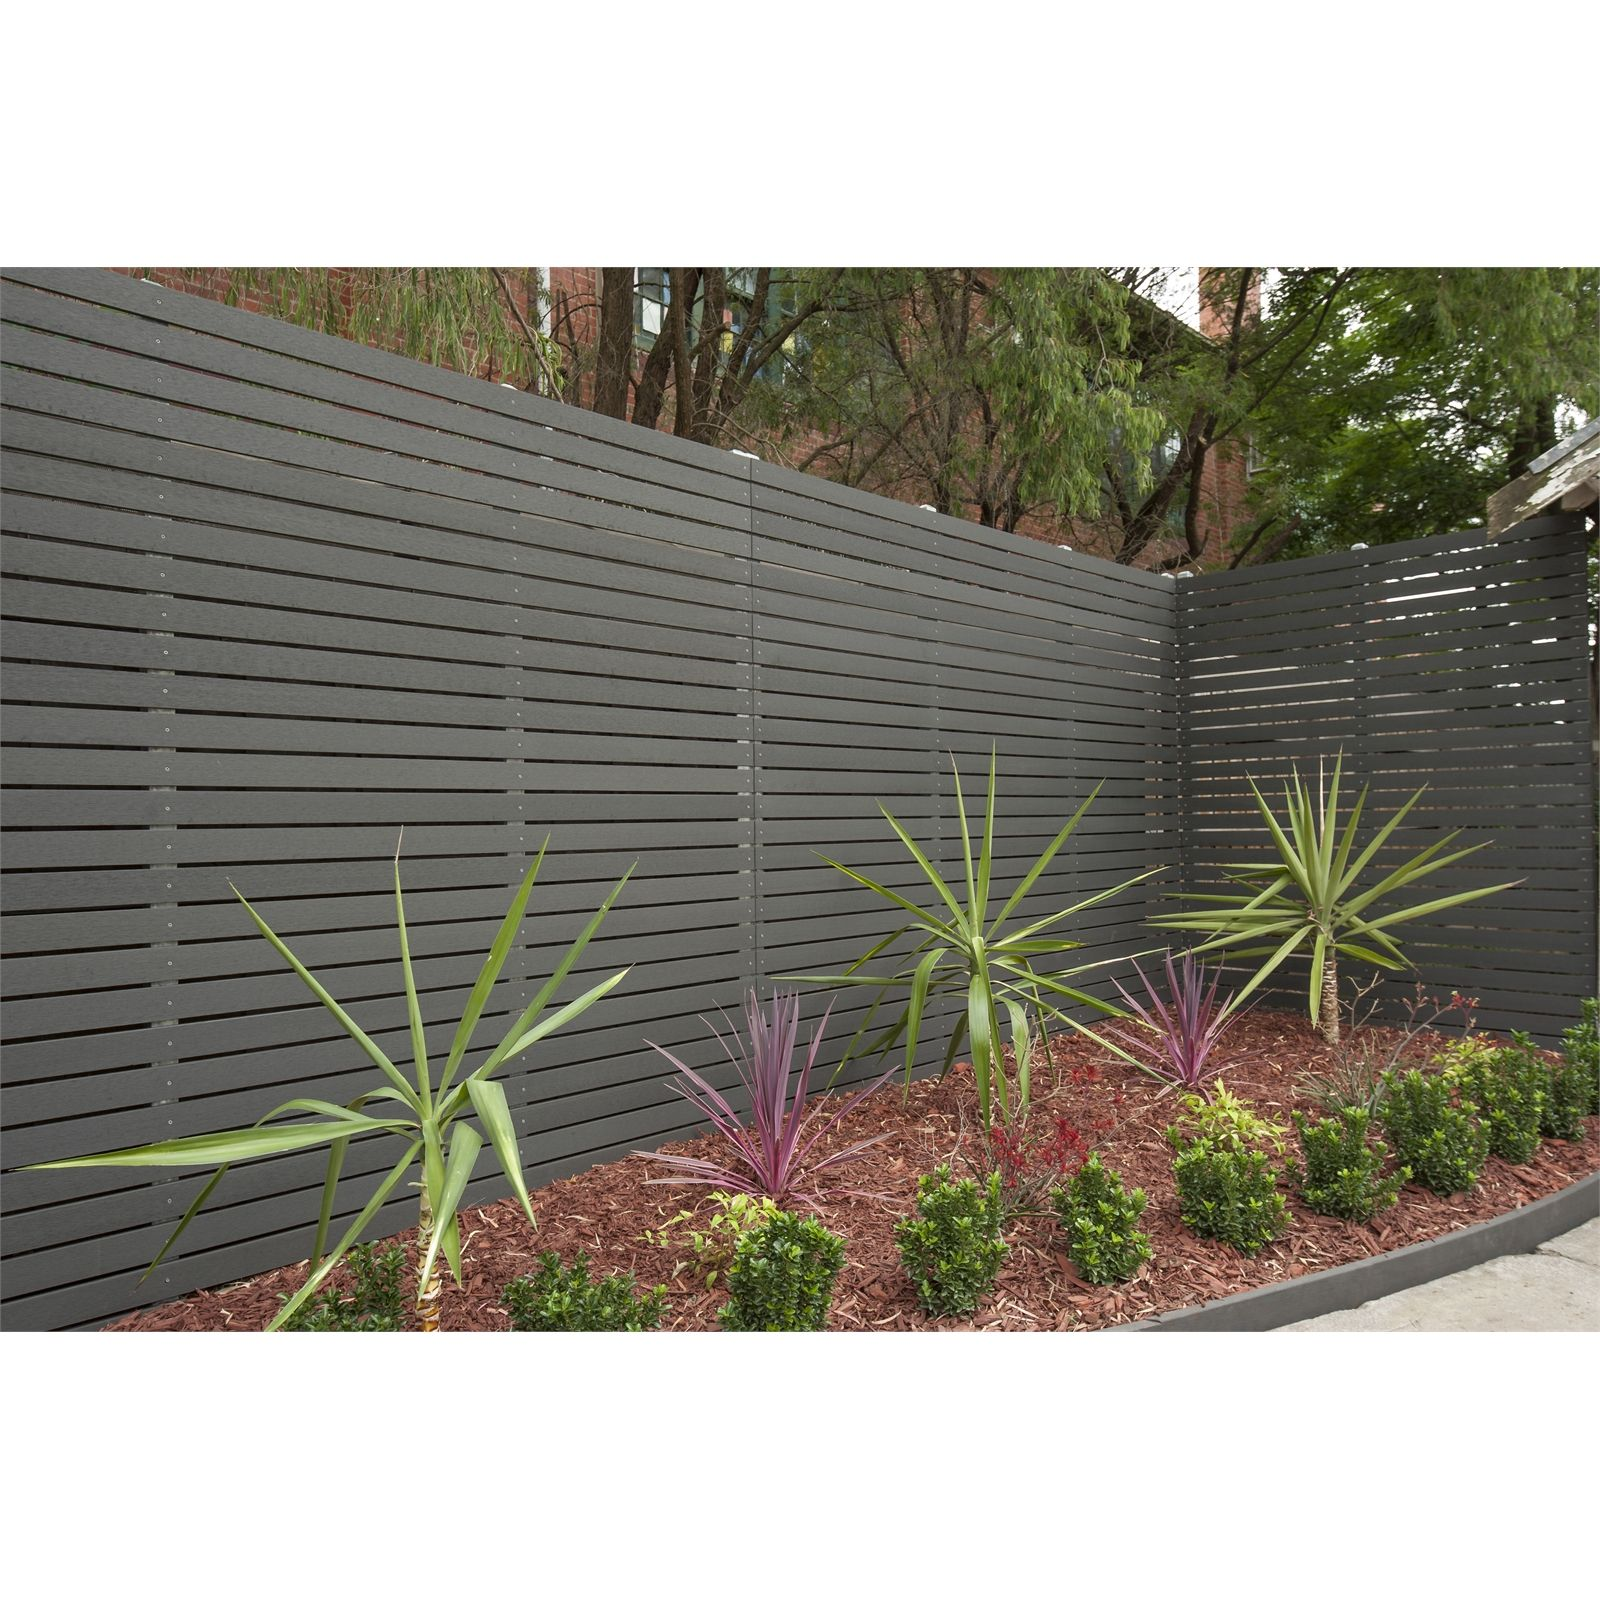 Ekodeck 67 X 15mm 2 7m Greystone Composite Screening Small Front